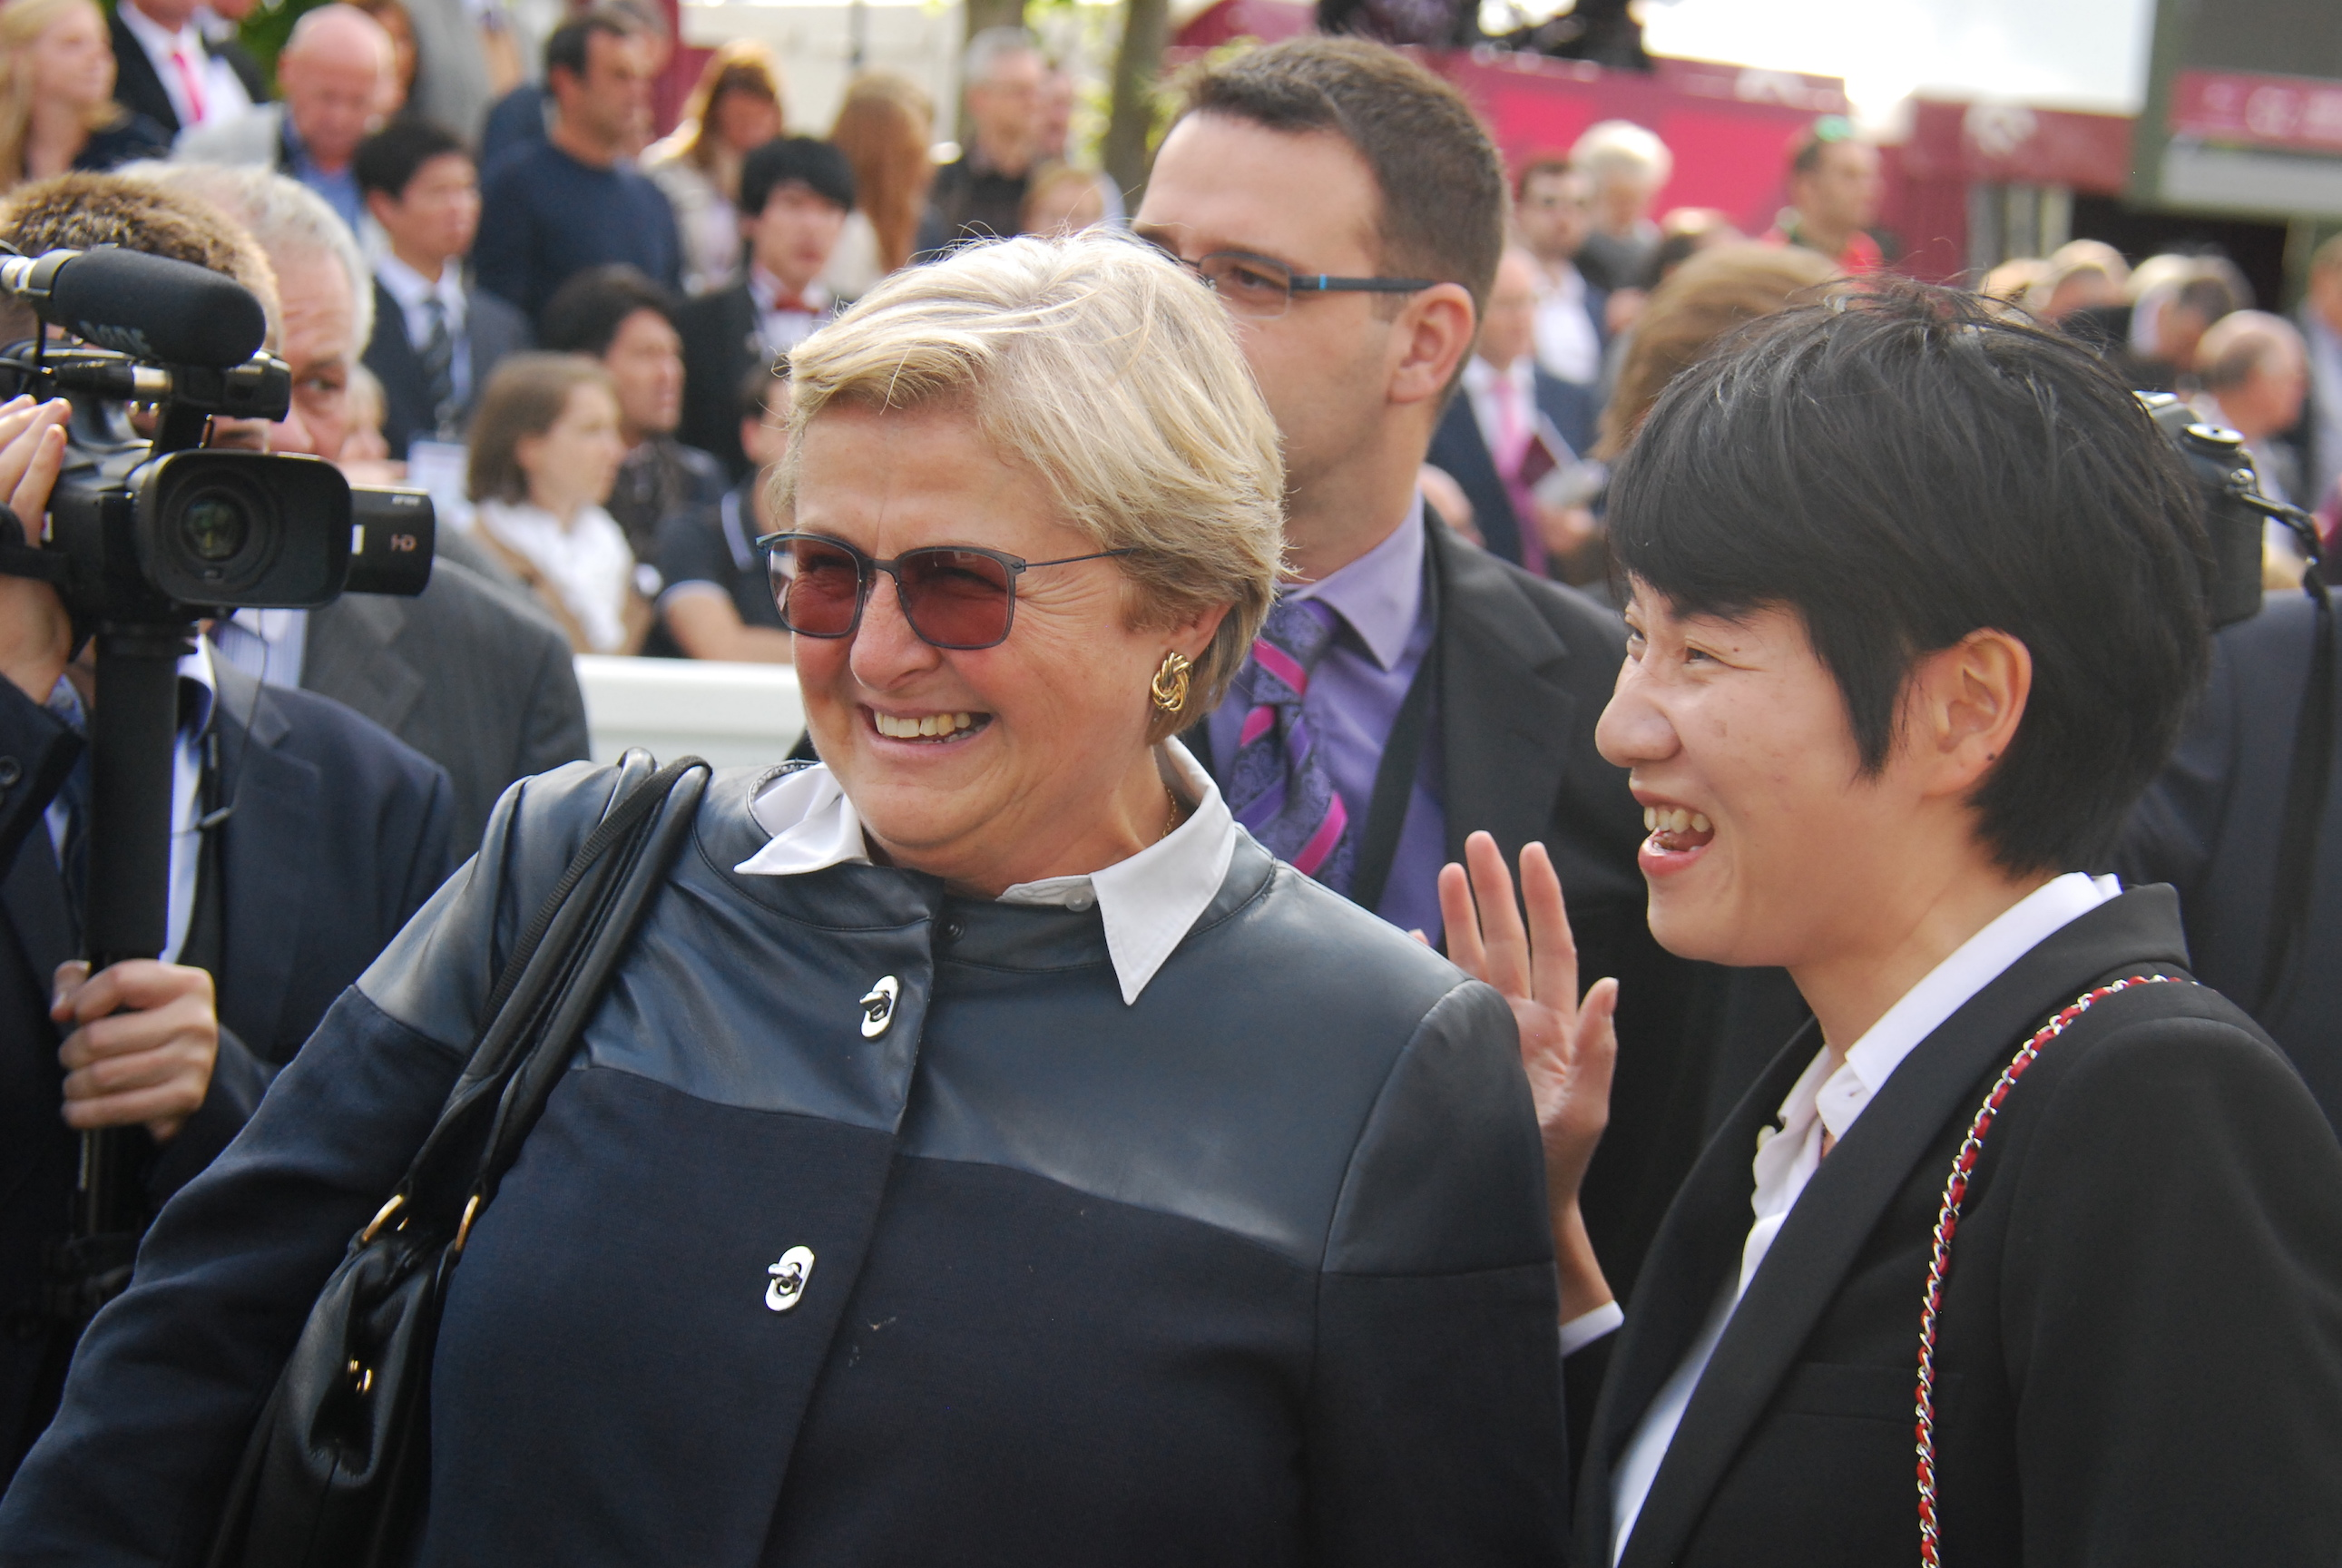 Criquette Head-Maarek and Sun Bloodstock's Danielle Cheng in the winners' enclosure after National Defense's Arc Day victory. Photo: John Gilmore